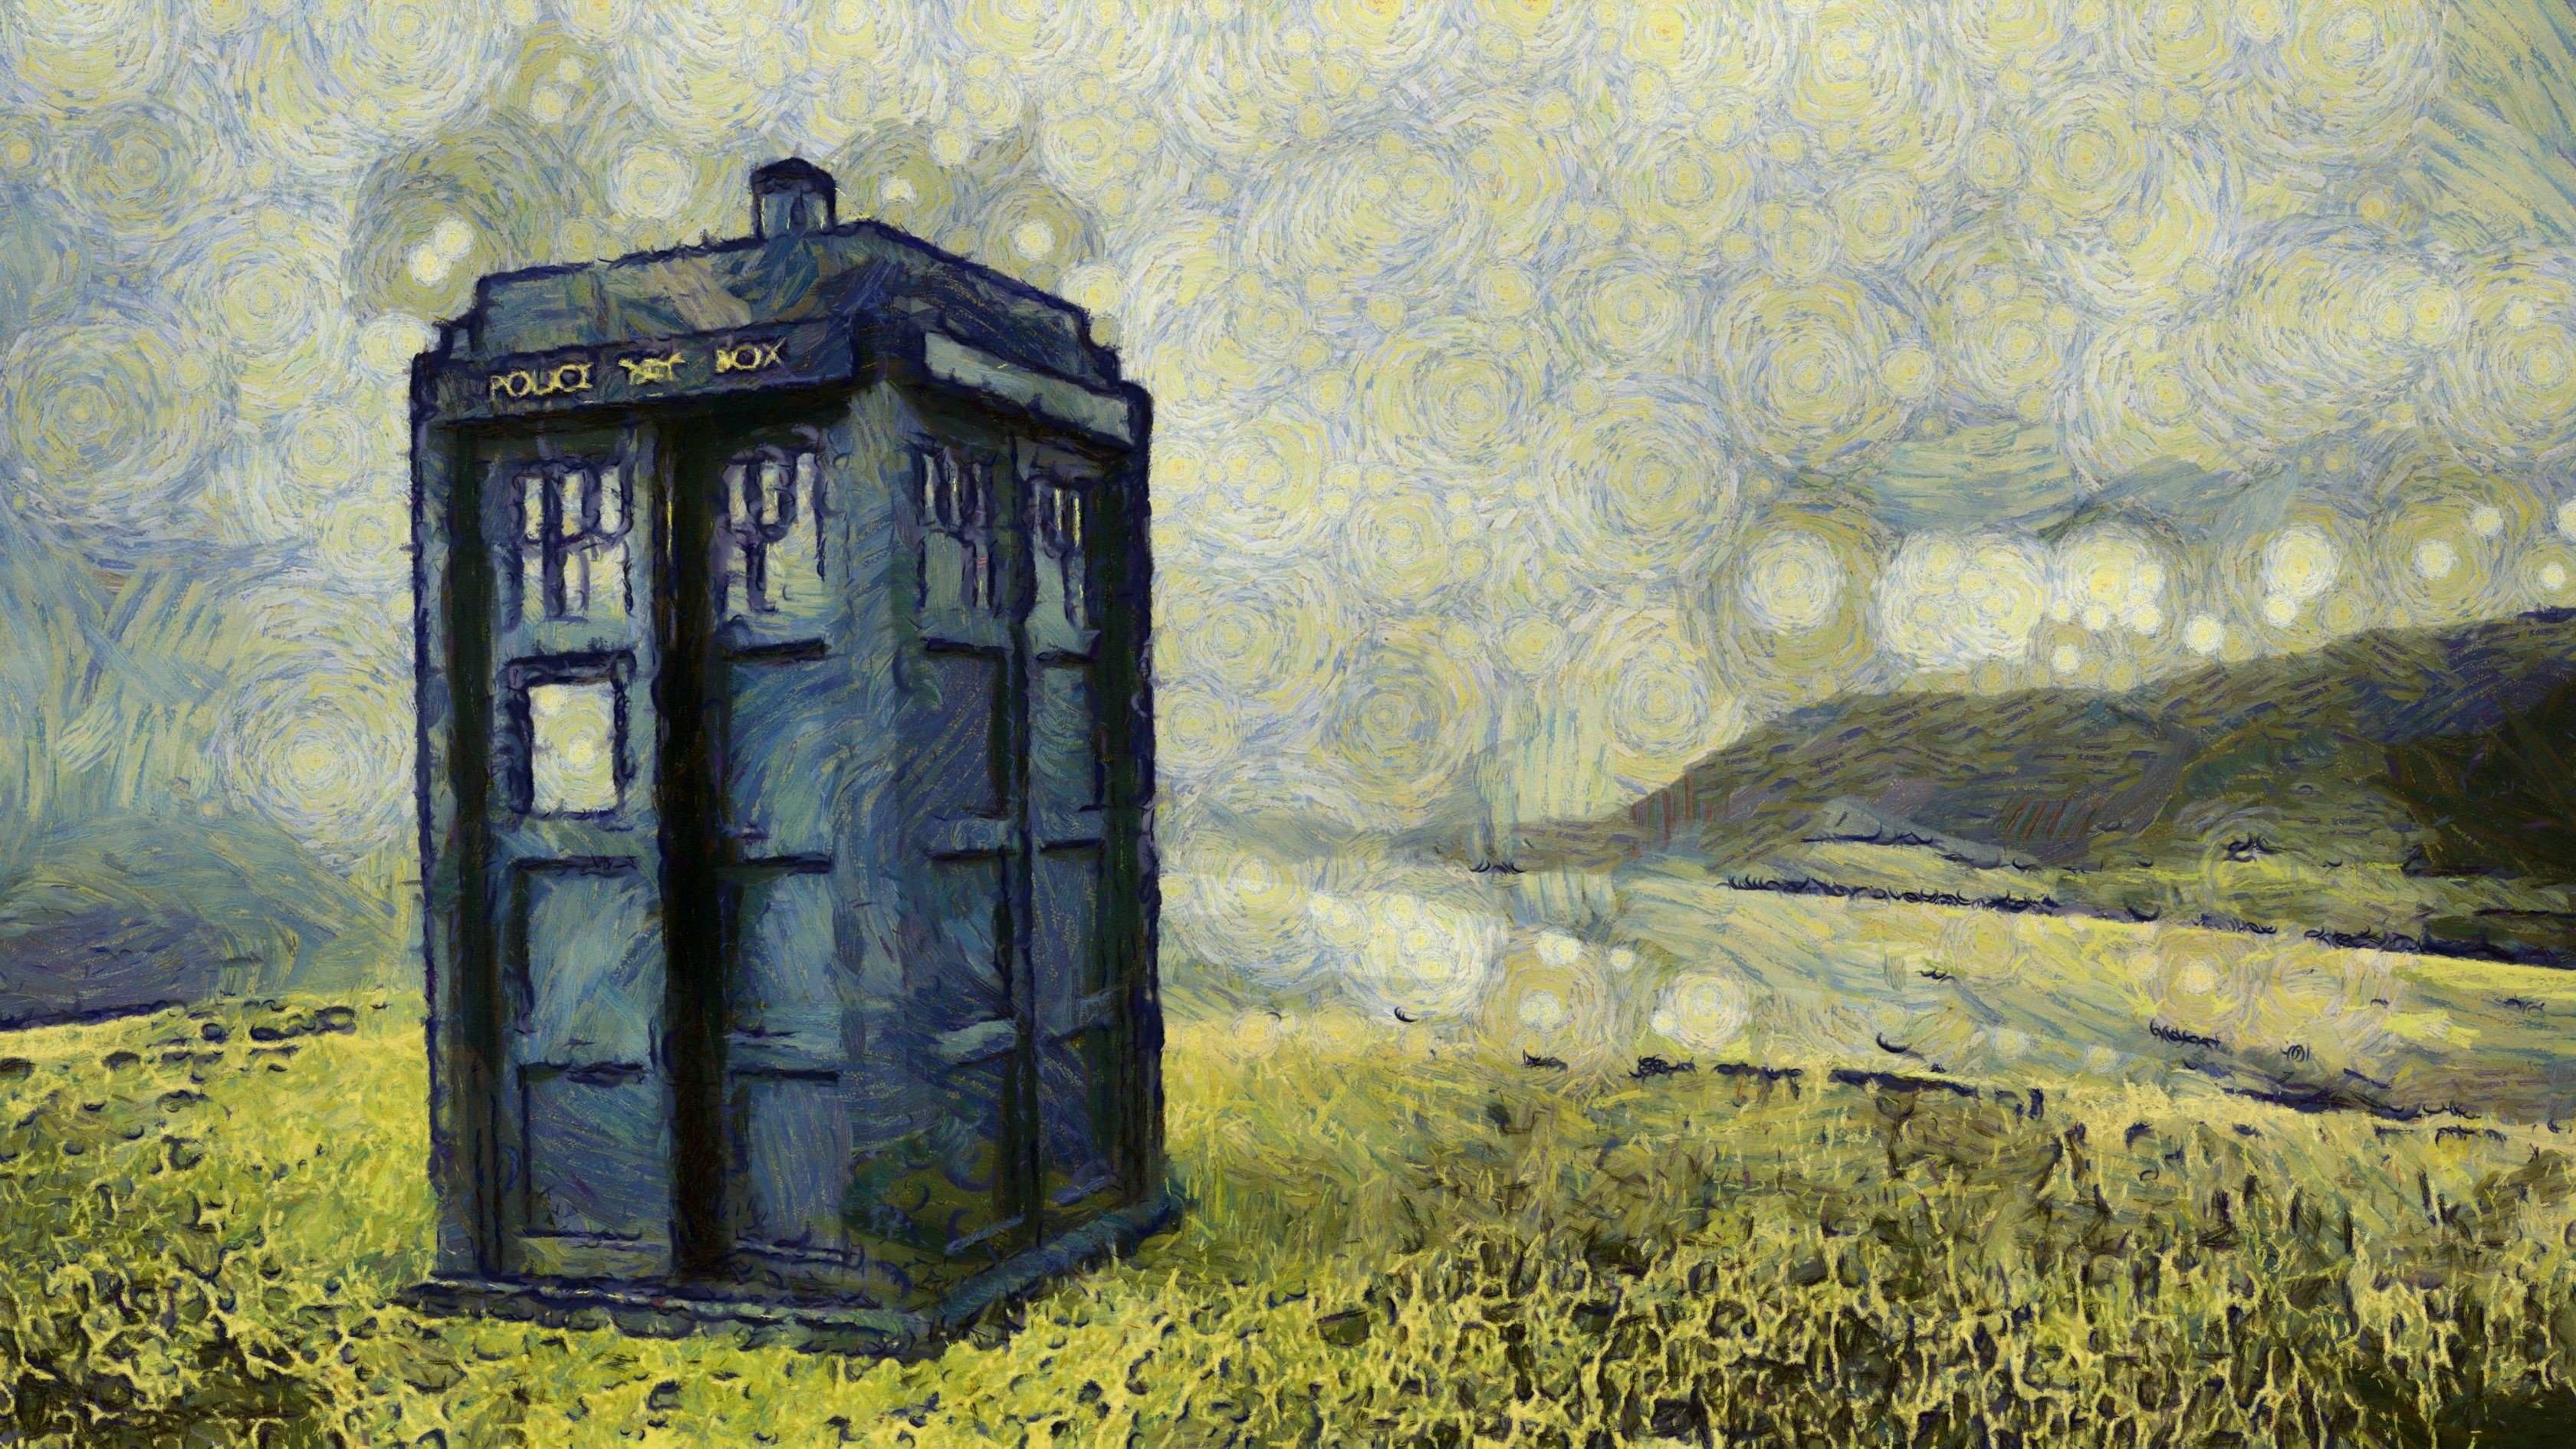 3360x1890 Tardis Doctor Who The Van Gogh Walldevil with regard to Android Wallpaper Van Gogh